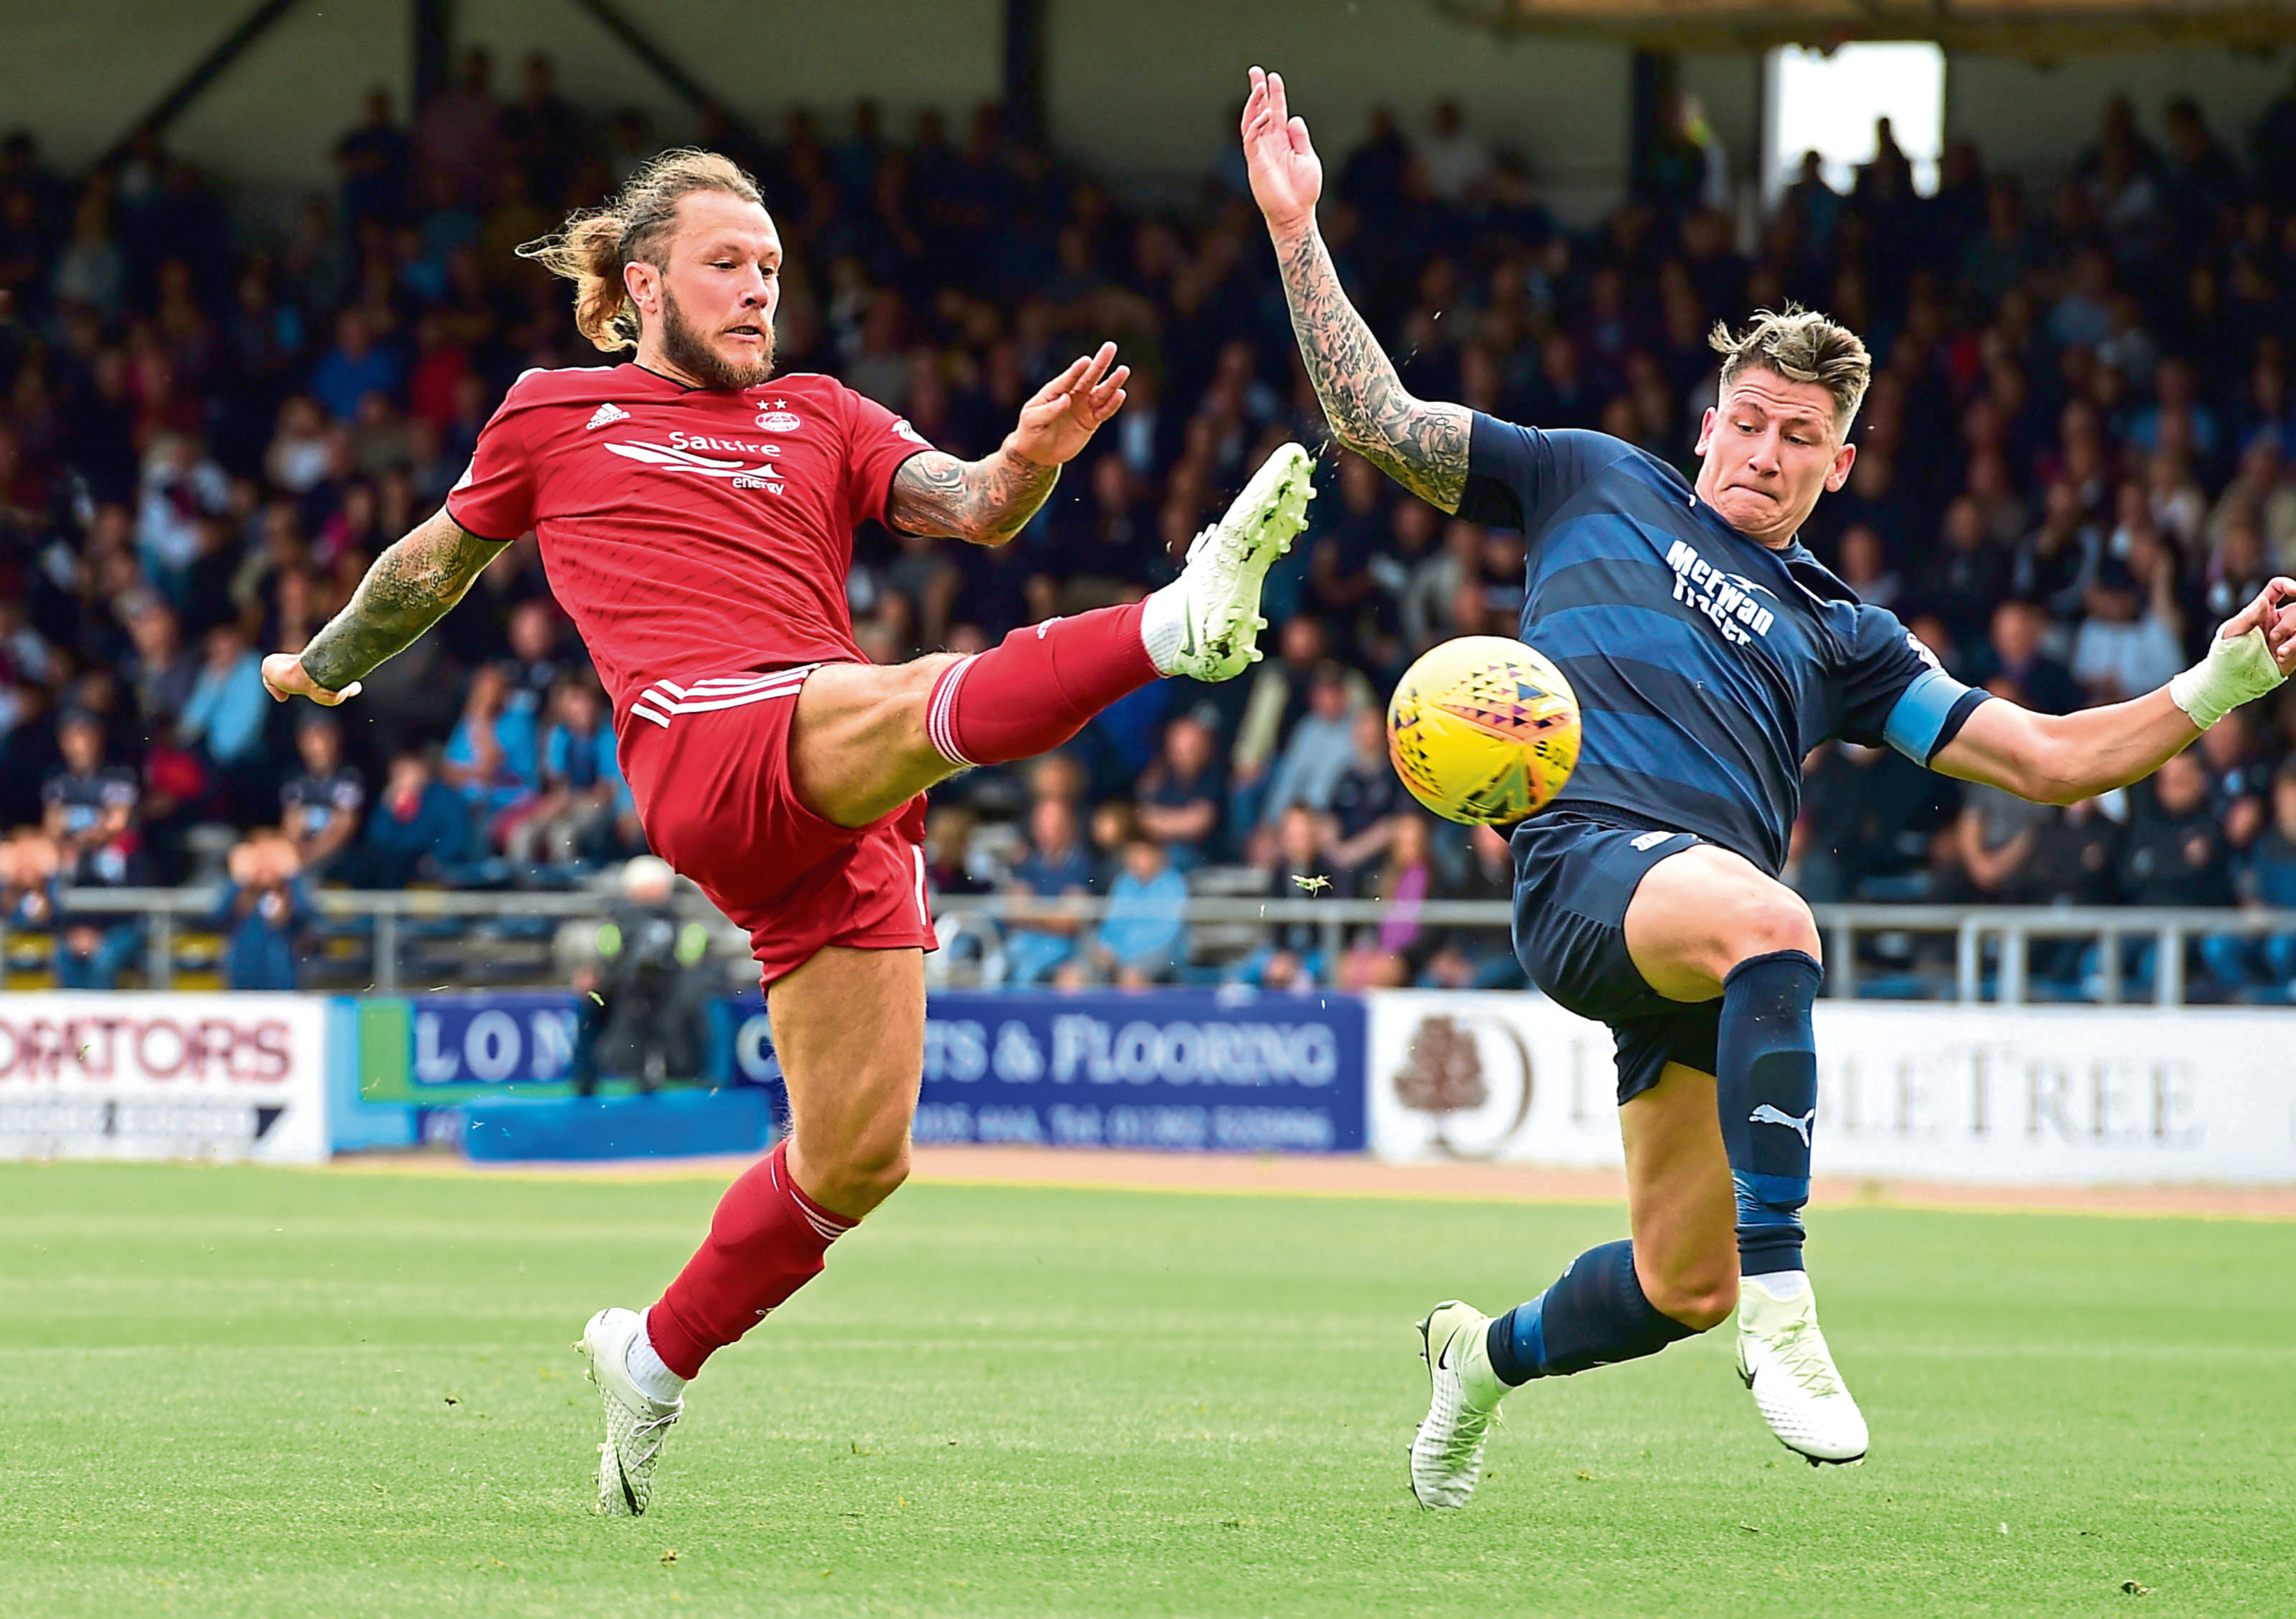 Aberden's Stevie May (left) and Josh Meetings in action.